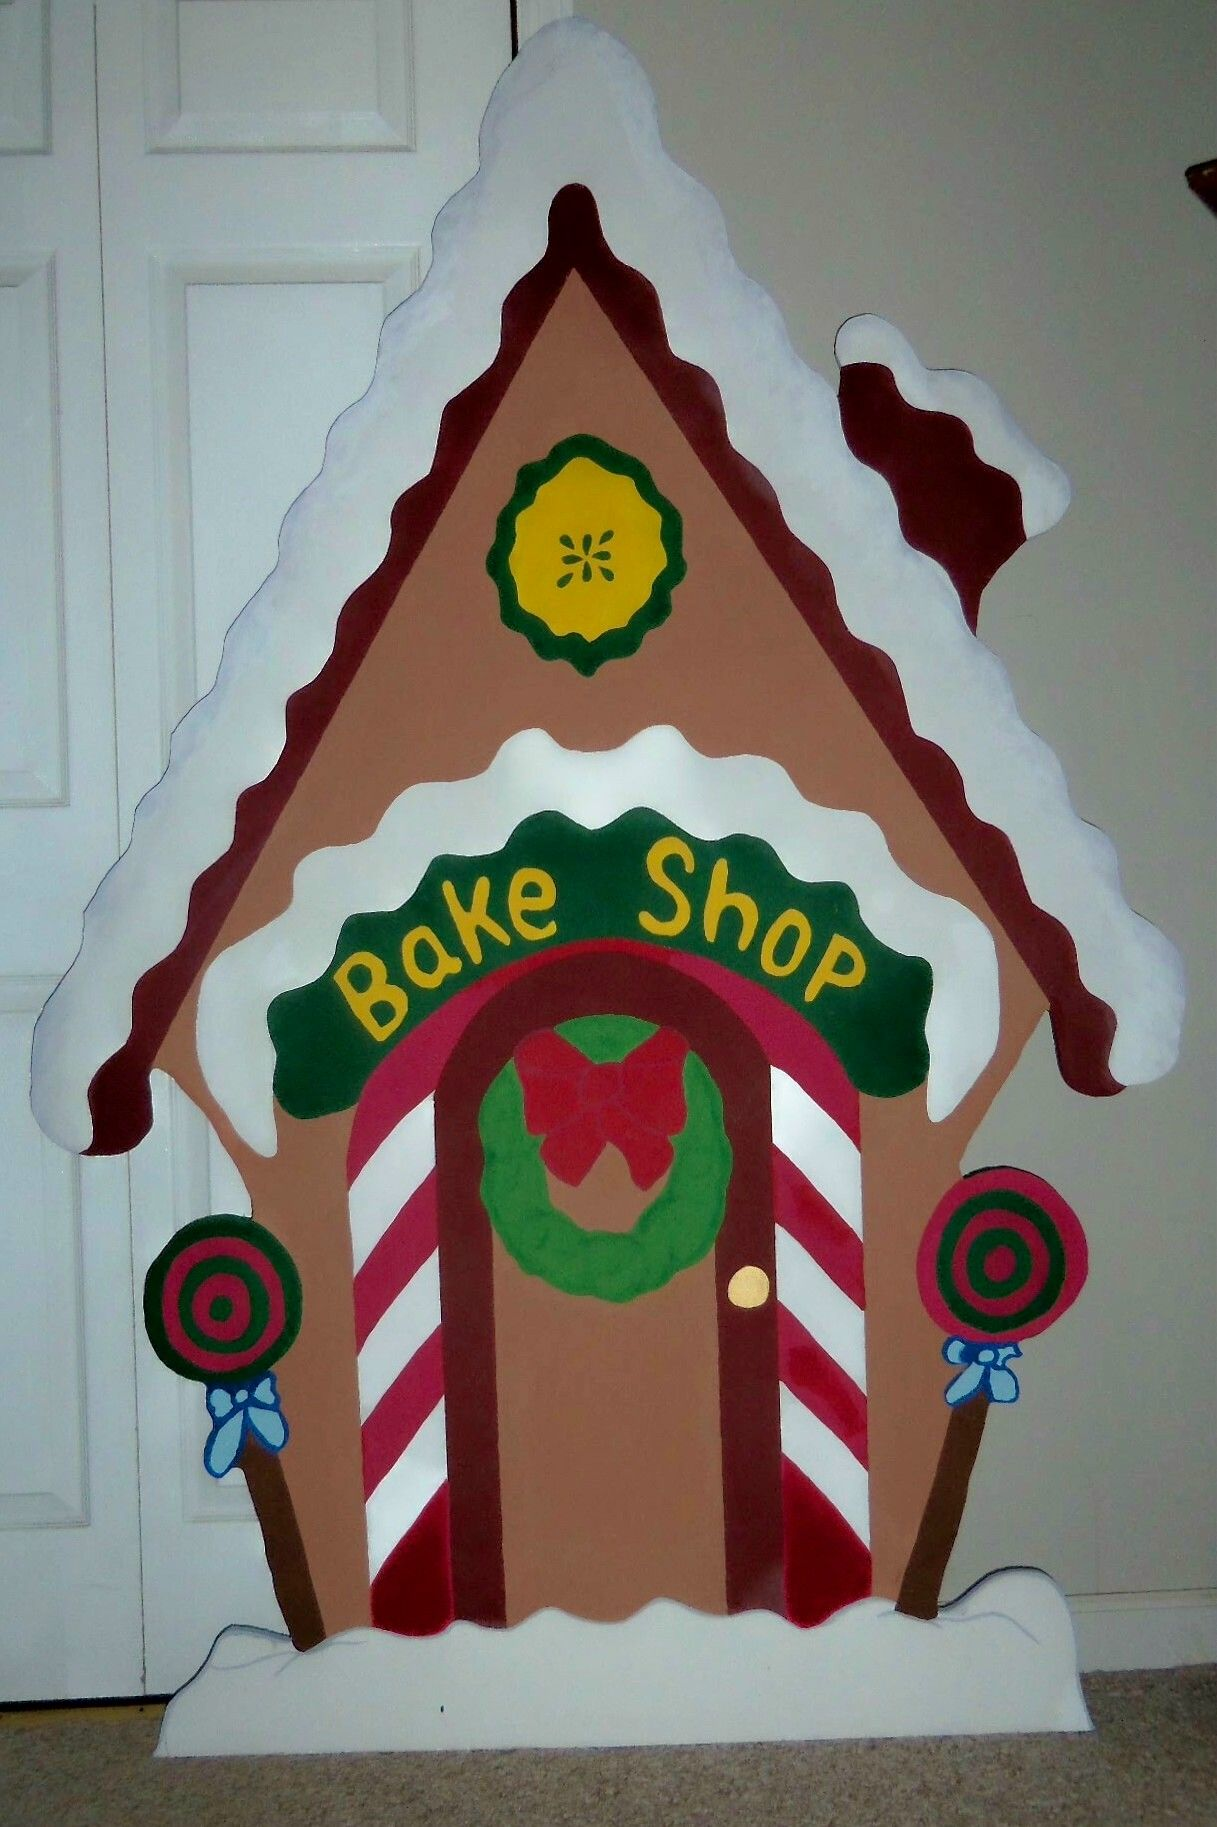 Santa 39 s bake shop holiday yard art decoration piece 5 for Yard cutouts